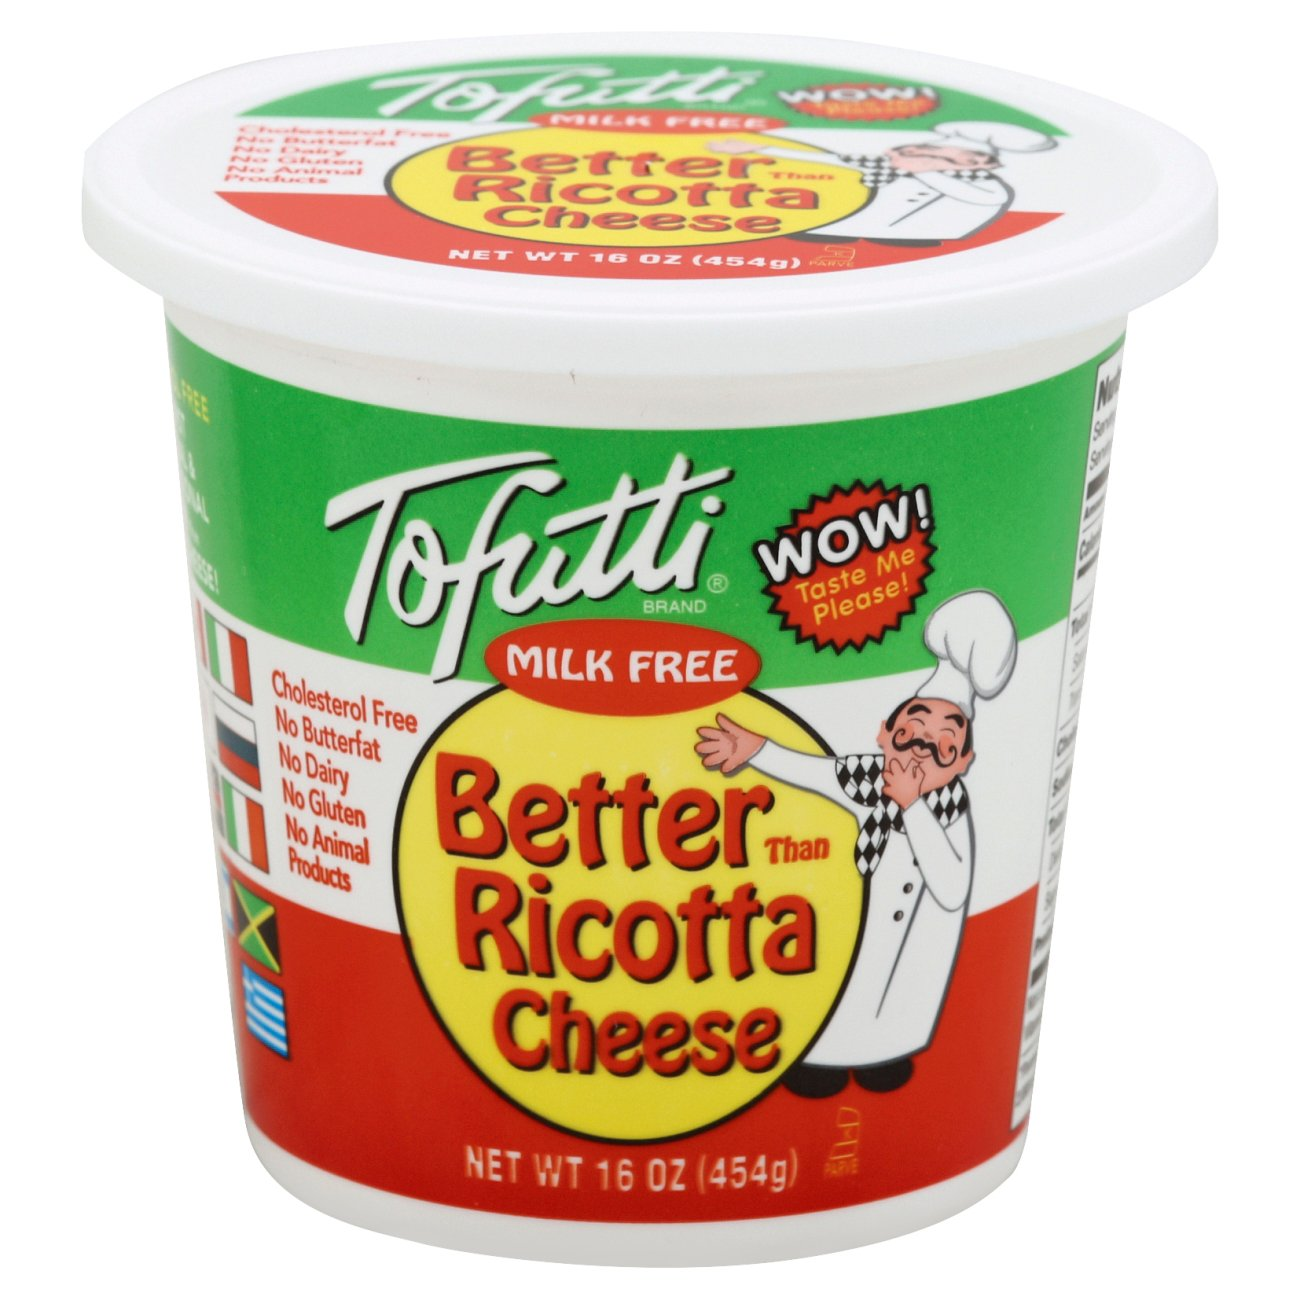 Tofutti Better Than Milk Free Better Than Ricotta Cheese Shop Cheese At H E B